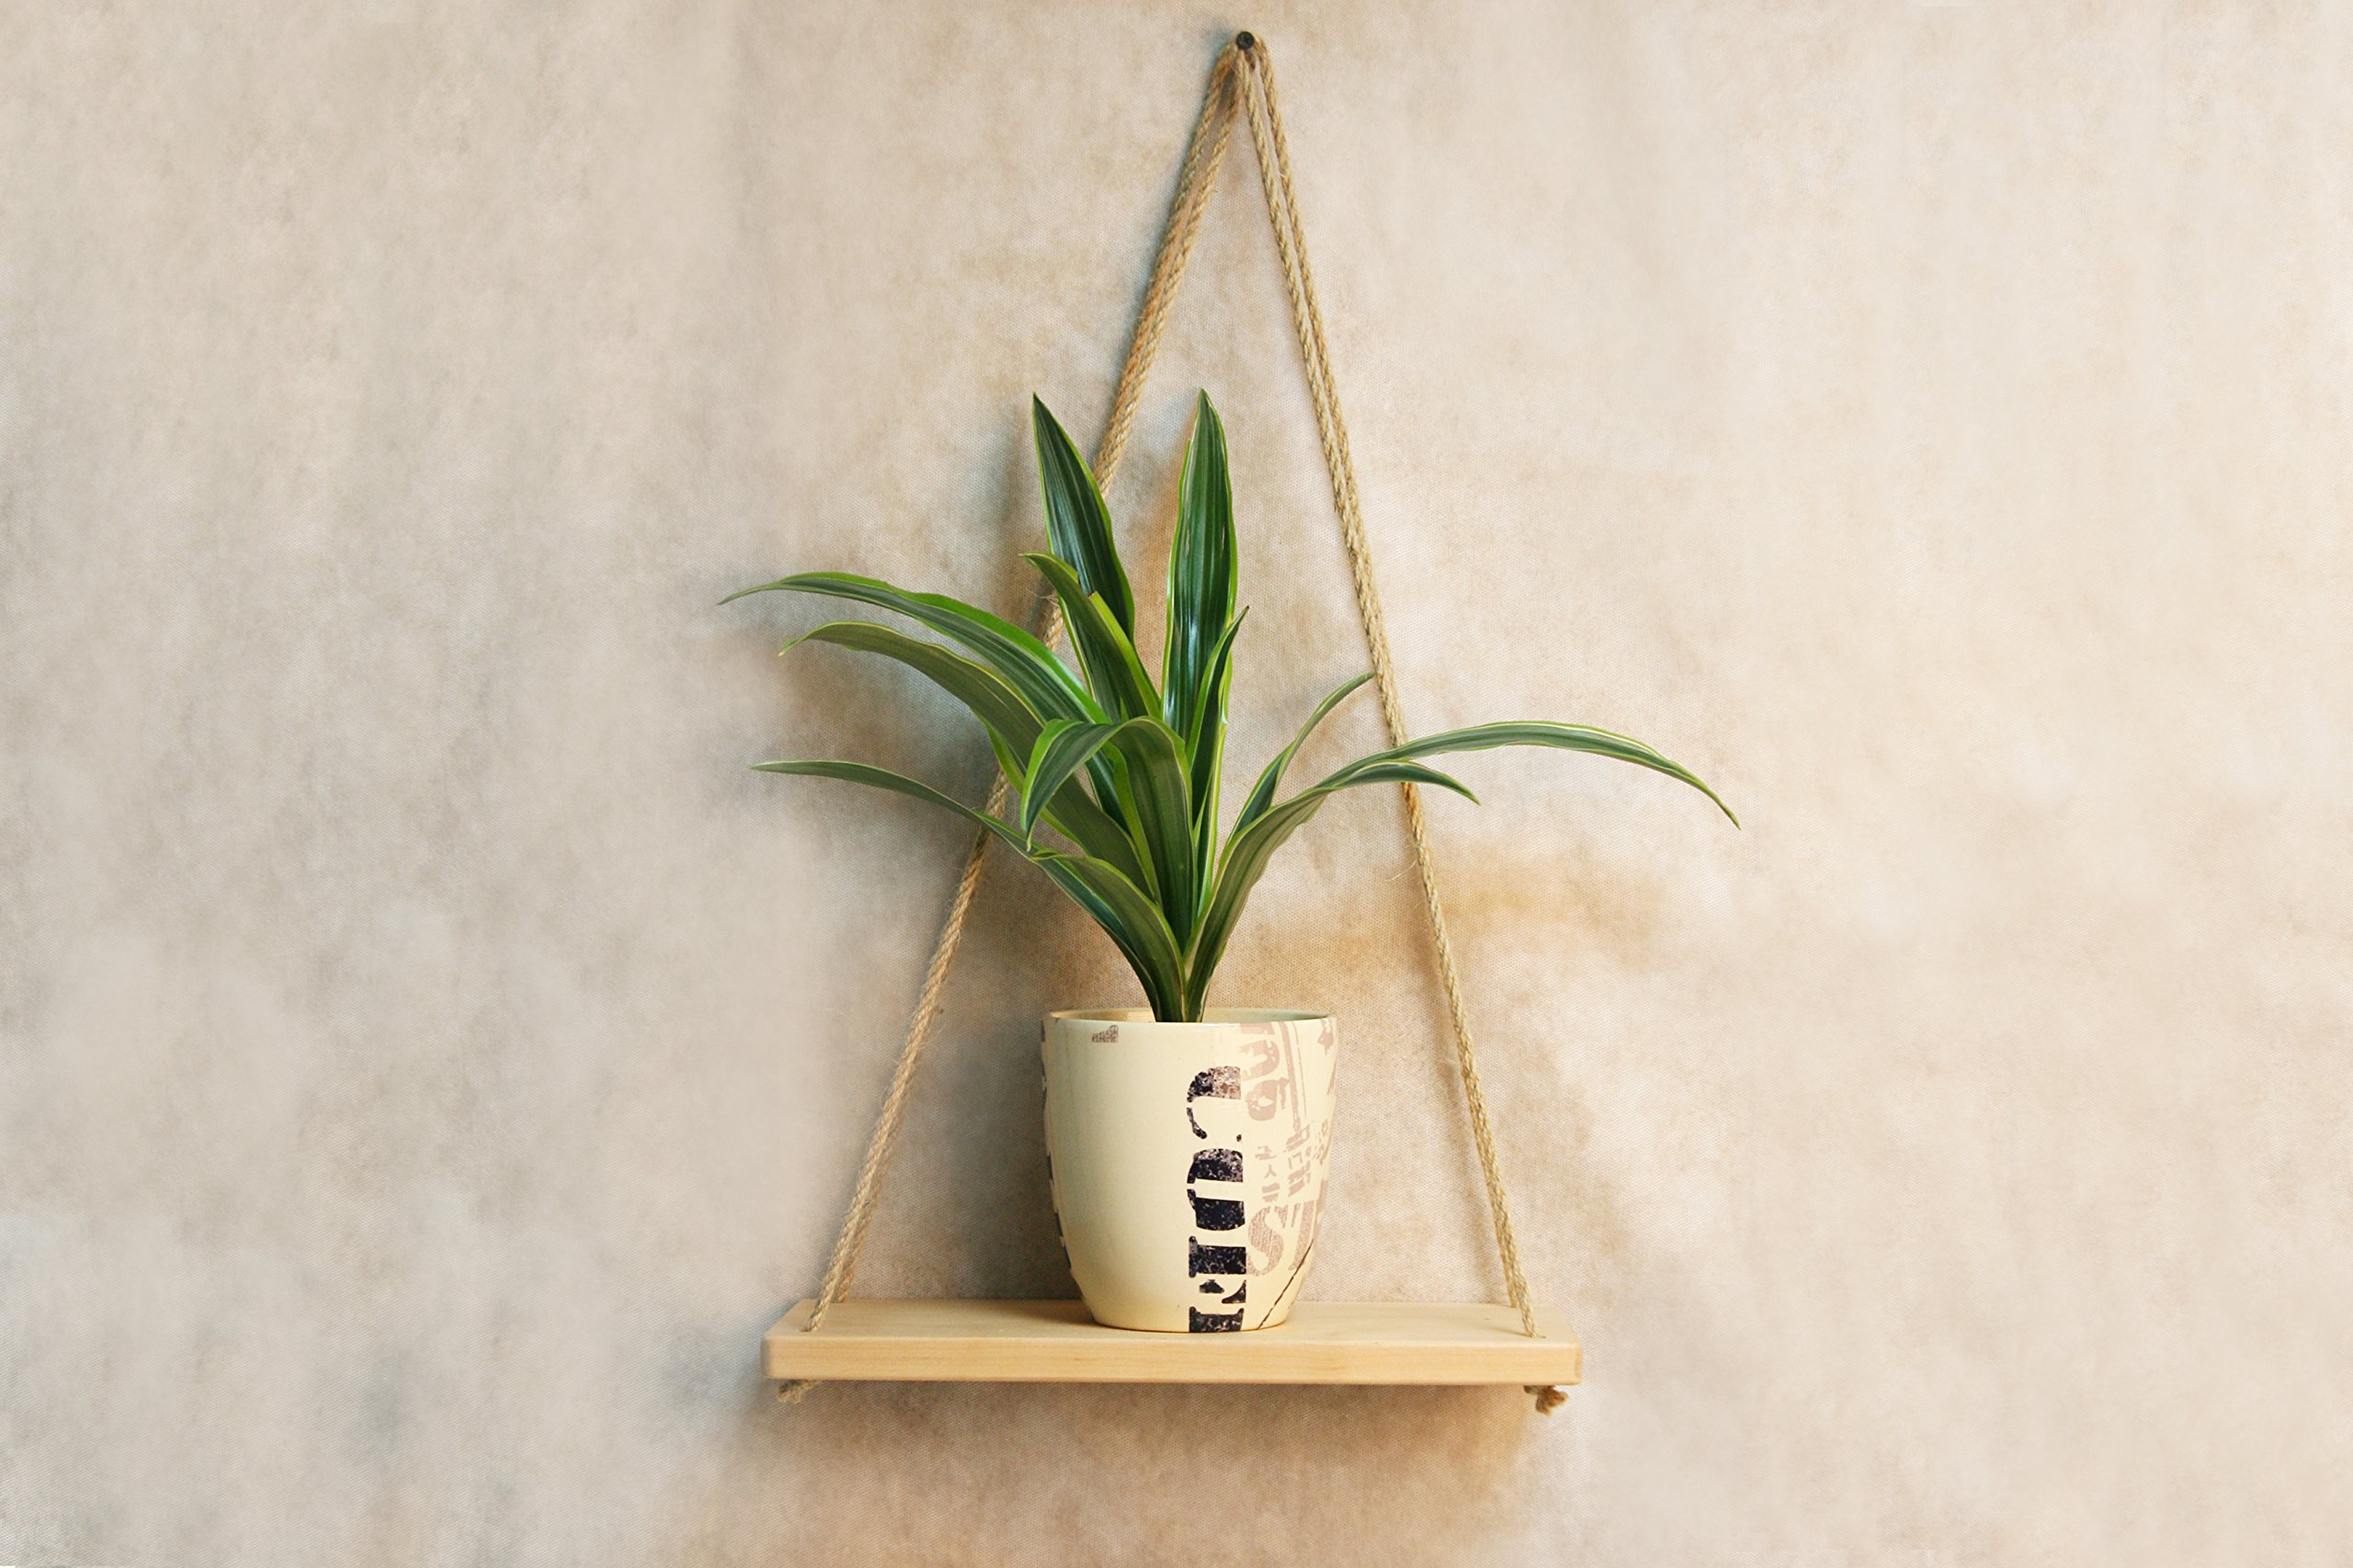 Wood Swing Hanging Rope Shelf Indoor 14x6 Inch - Minimalist Wooden Planter Holder Potted Floating Wall Shelves White - Small Mid Century Modern Plant Stand - Vintage Farmhouse Housewarming Gift